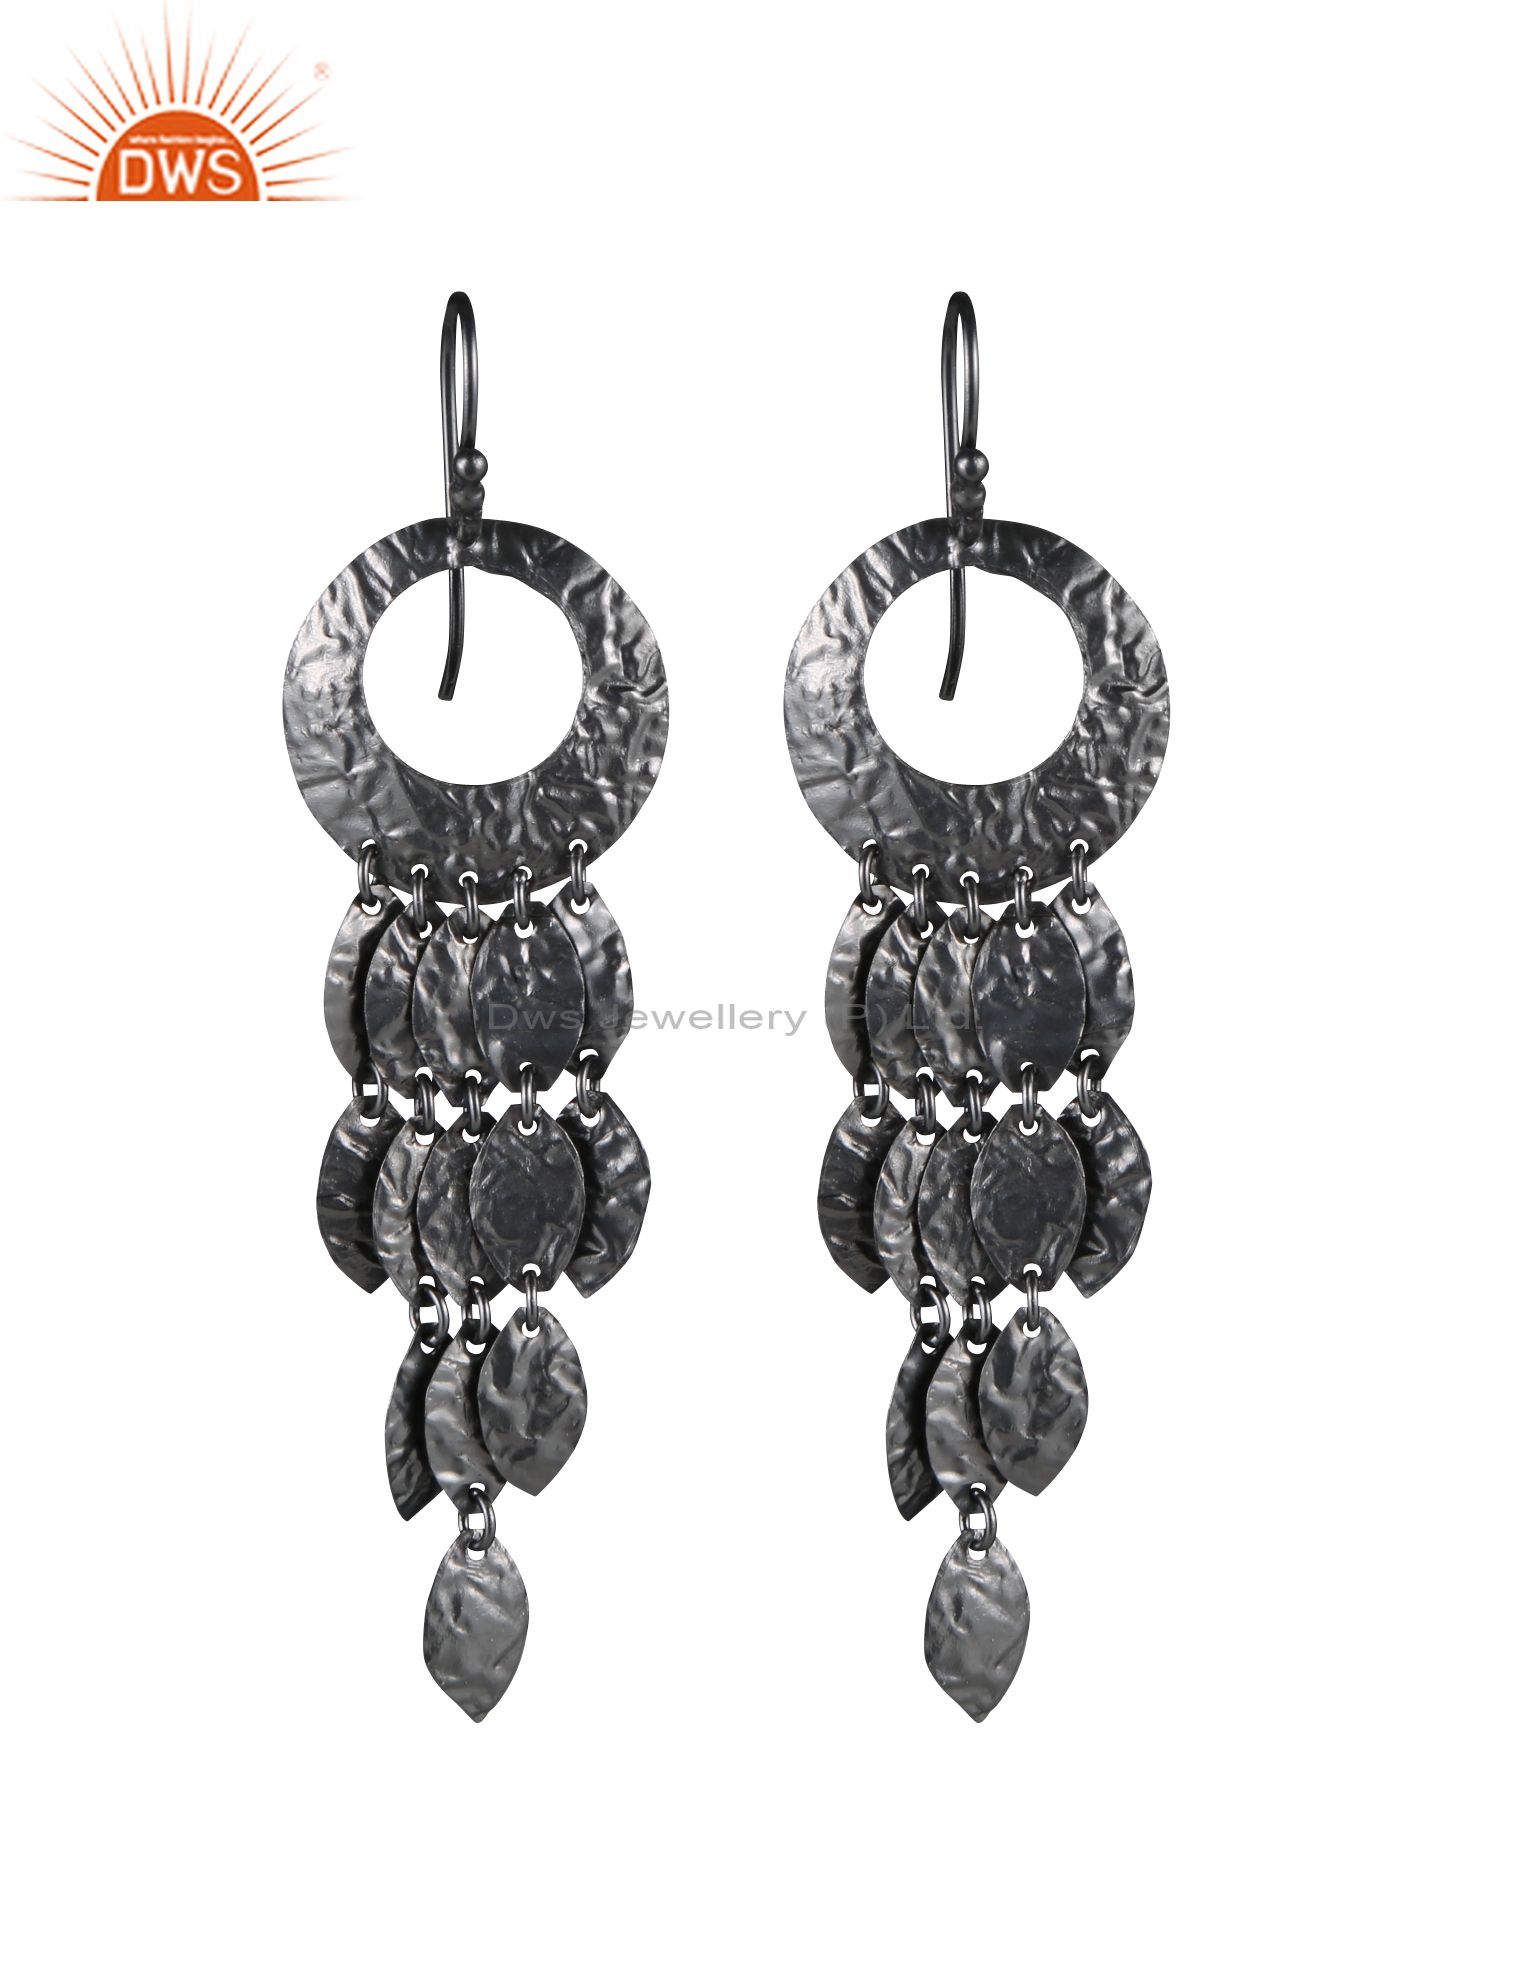 Handcrafted Sterling Silver With Oxidized Petals Designer Chandelier Earrings